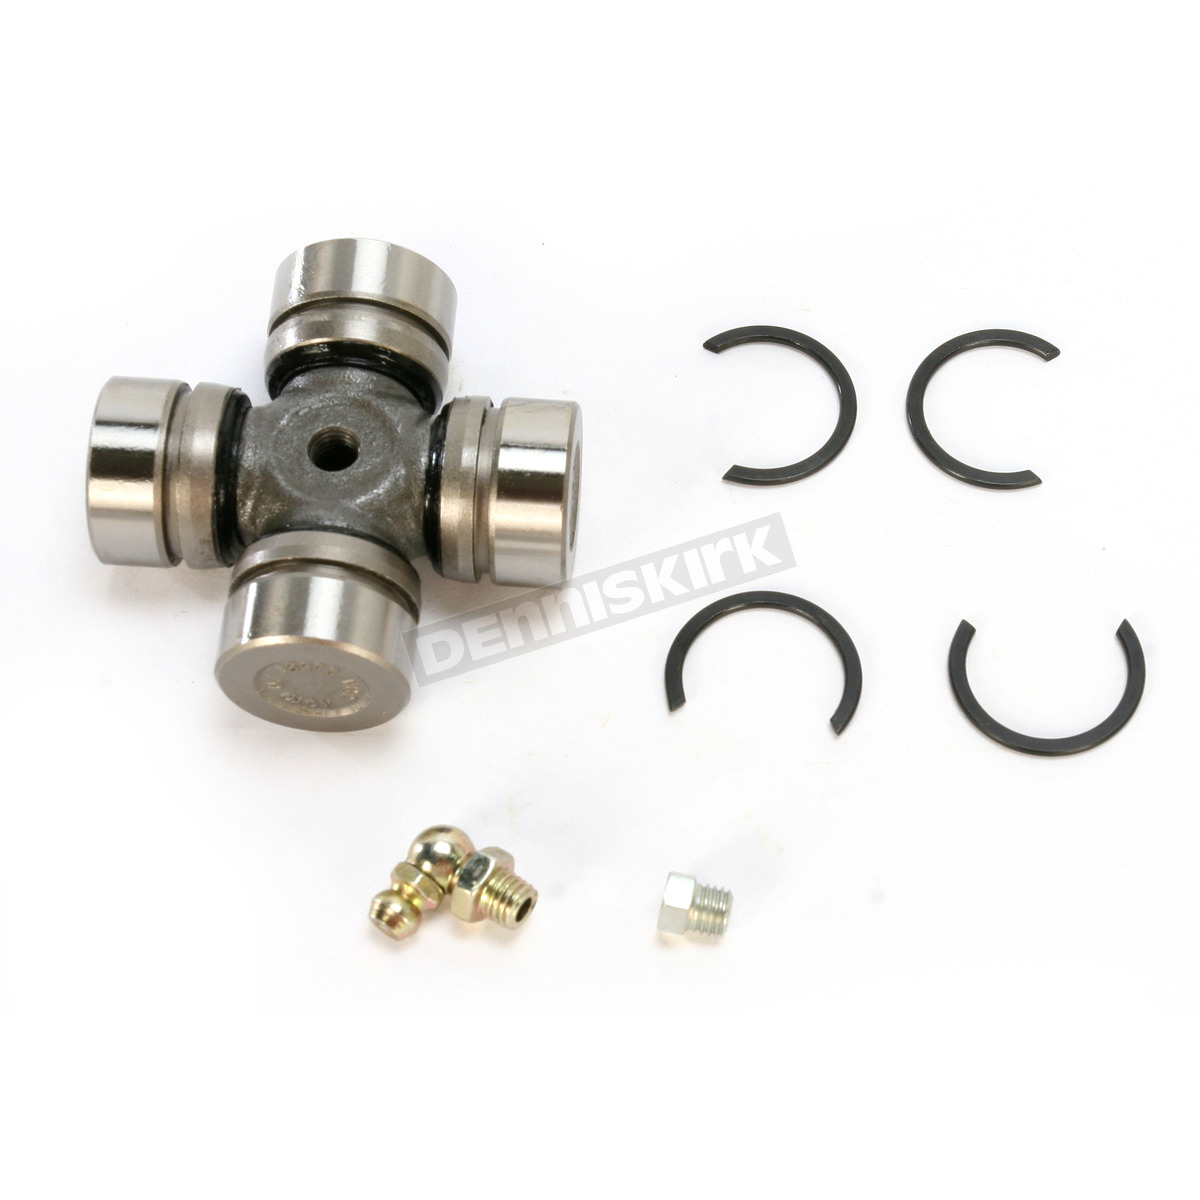 KVF 360 A Prairie 4x4 2003-2013 All Balls Racing U-Joint Kit 19-1004 Compatible With//Replacement For Kawasaki KFX 700 V-Force 2004-2009